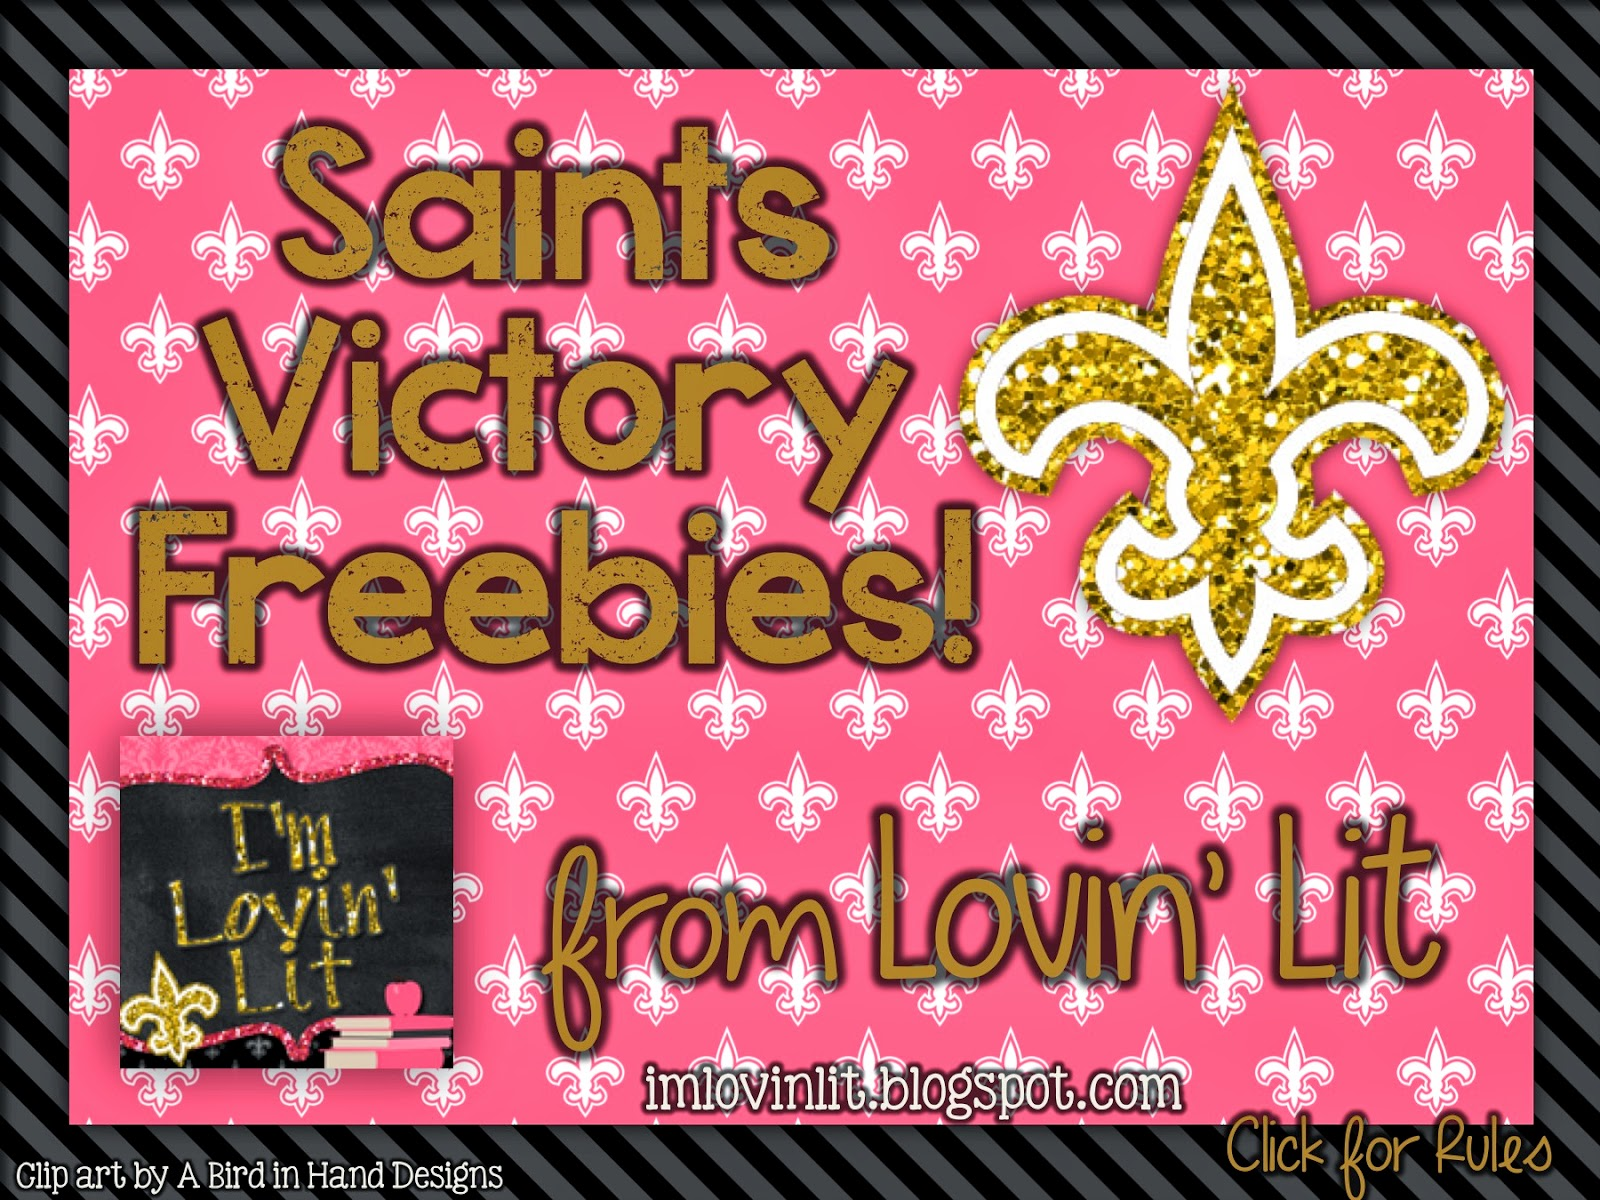 Victory Freebies #3!